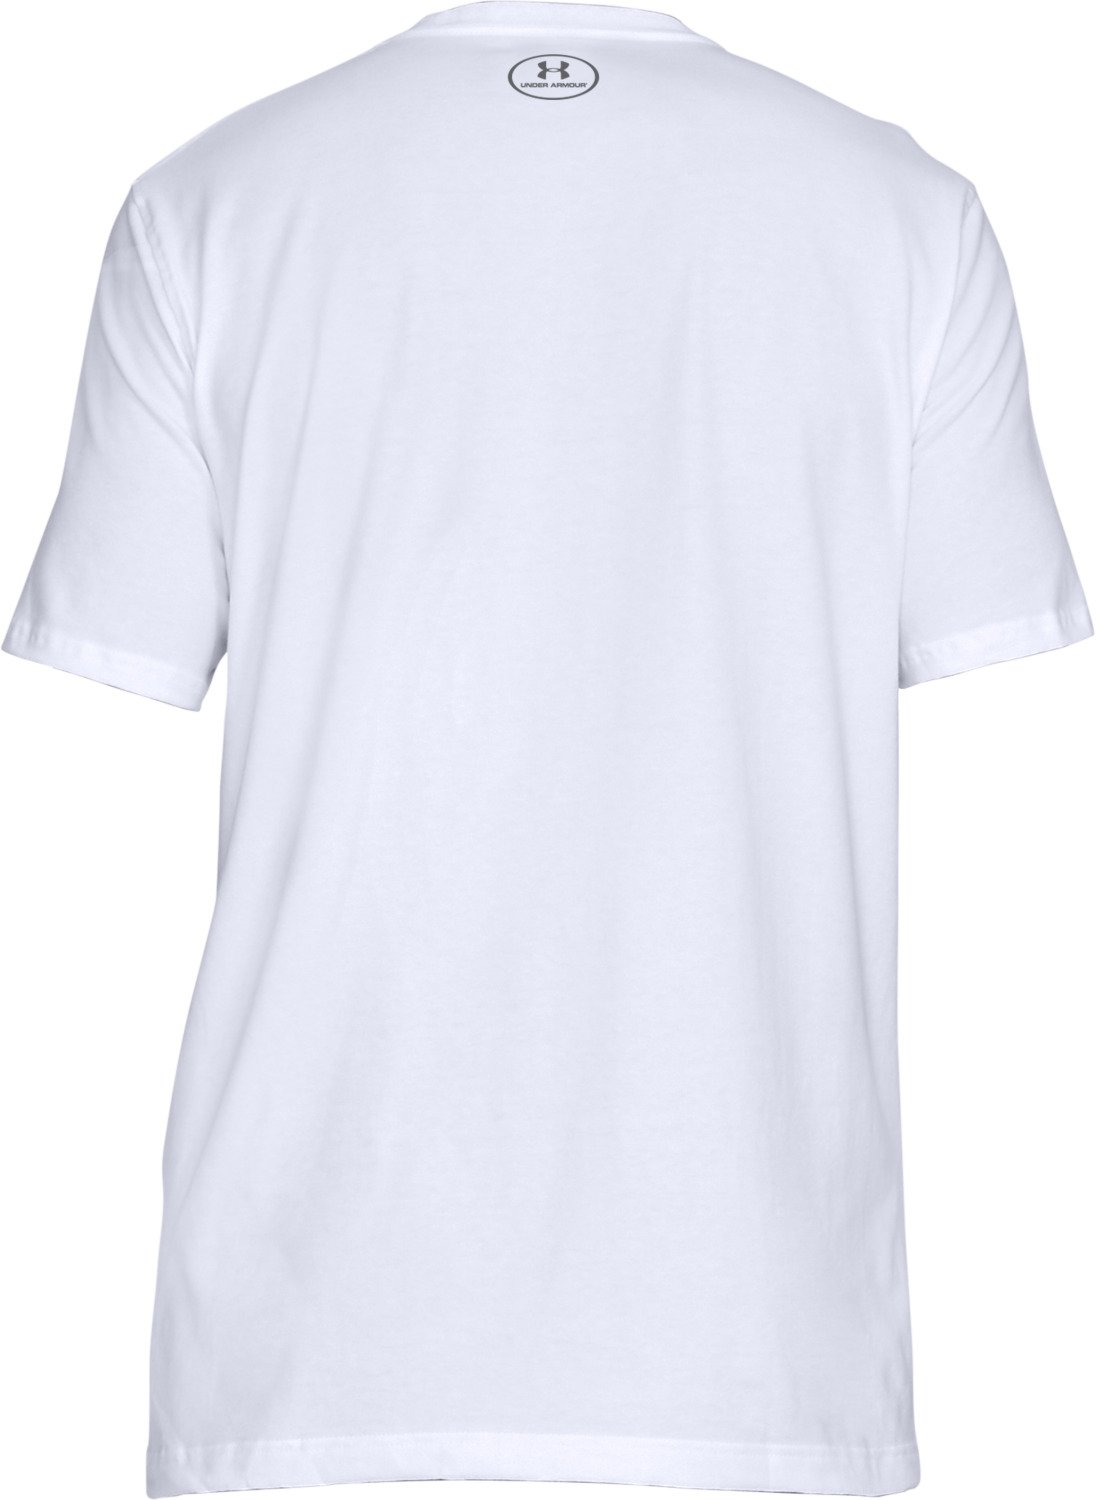 Under Armour Men's Graphic T-shirt - view number 1